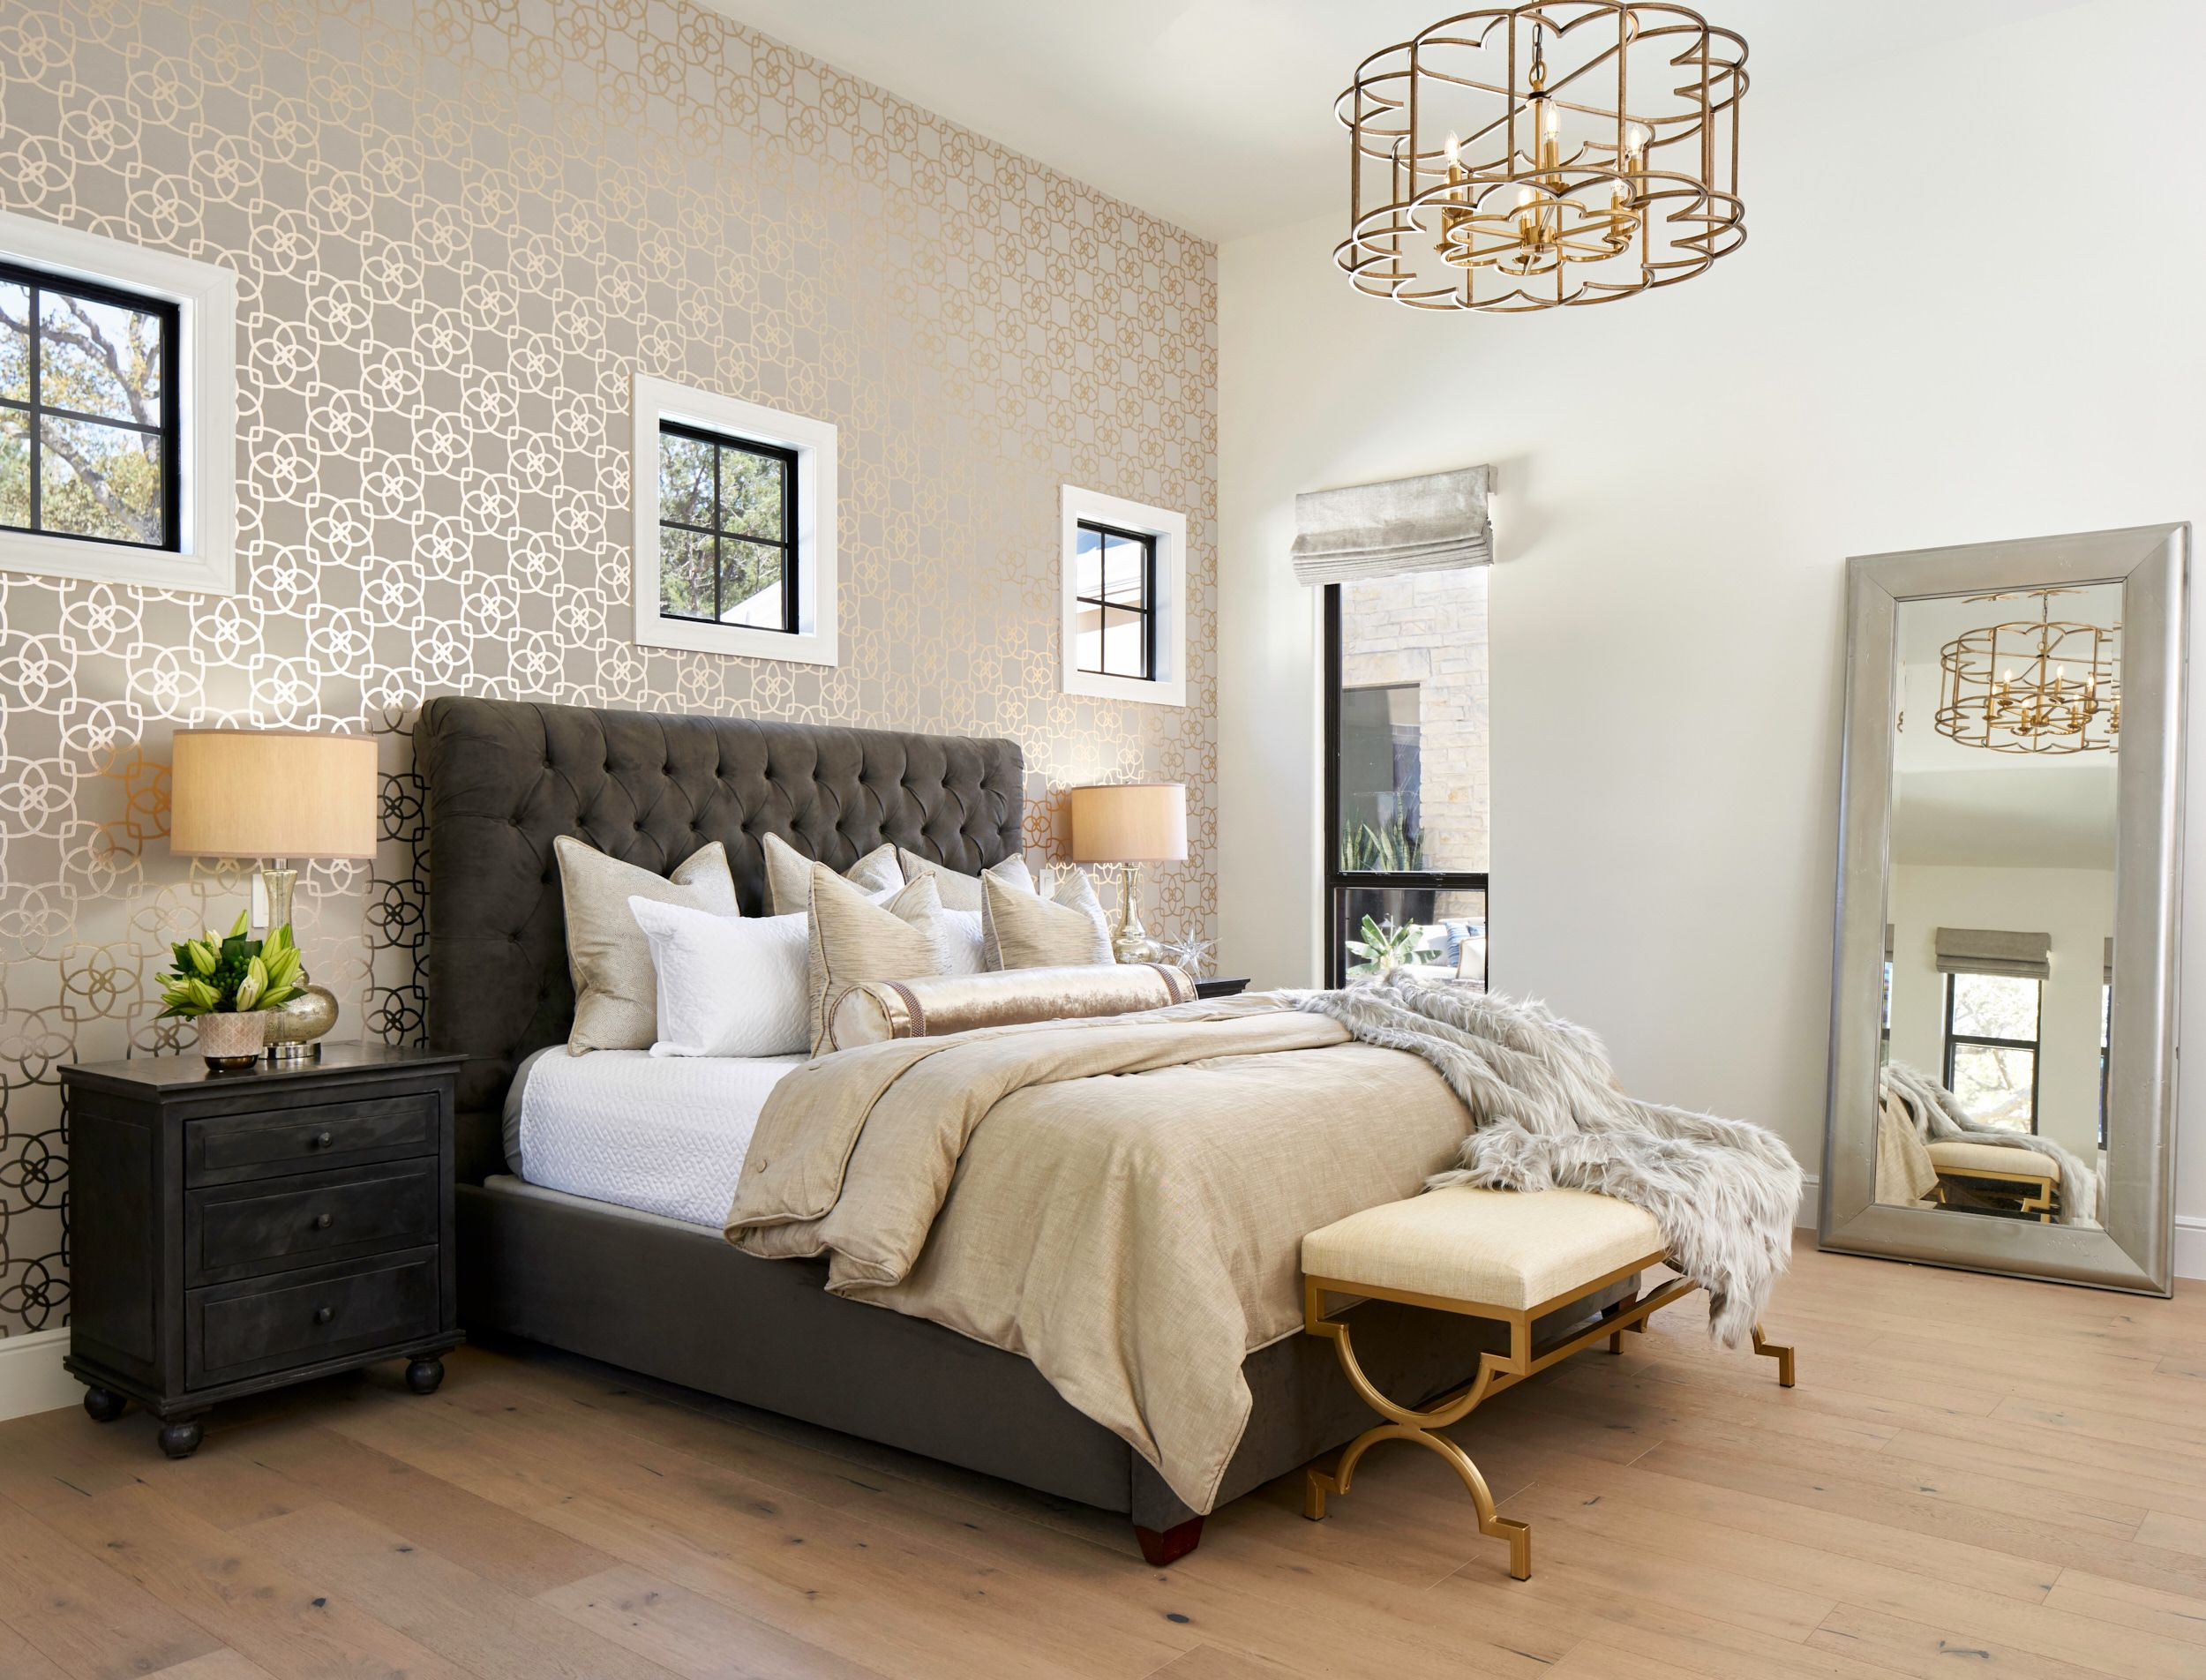 Transitional Master Bedroom With Wallpaper Accent Wall And European White